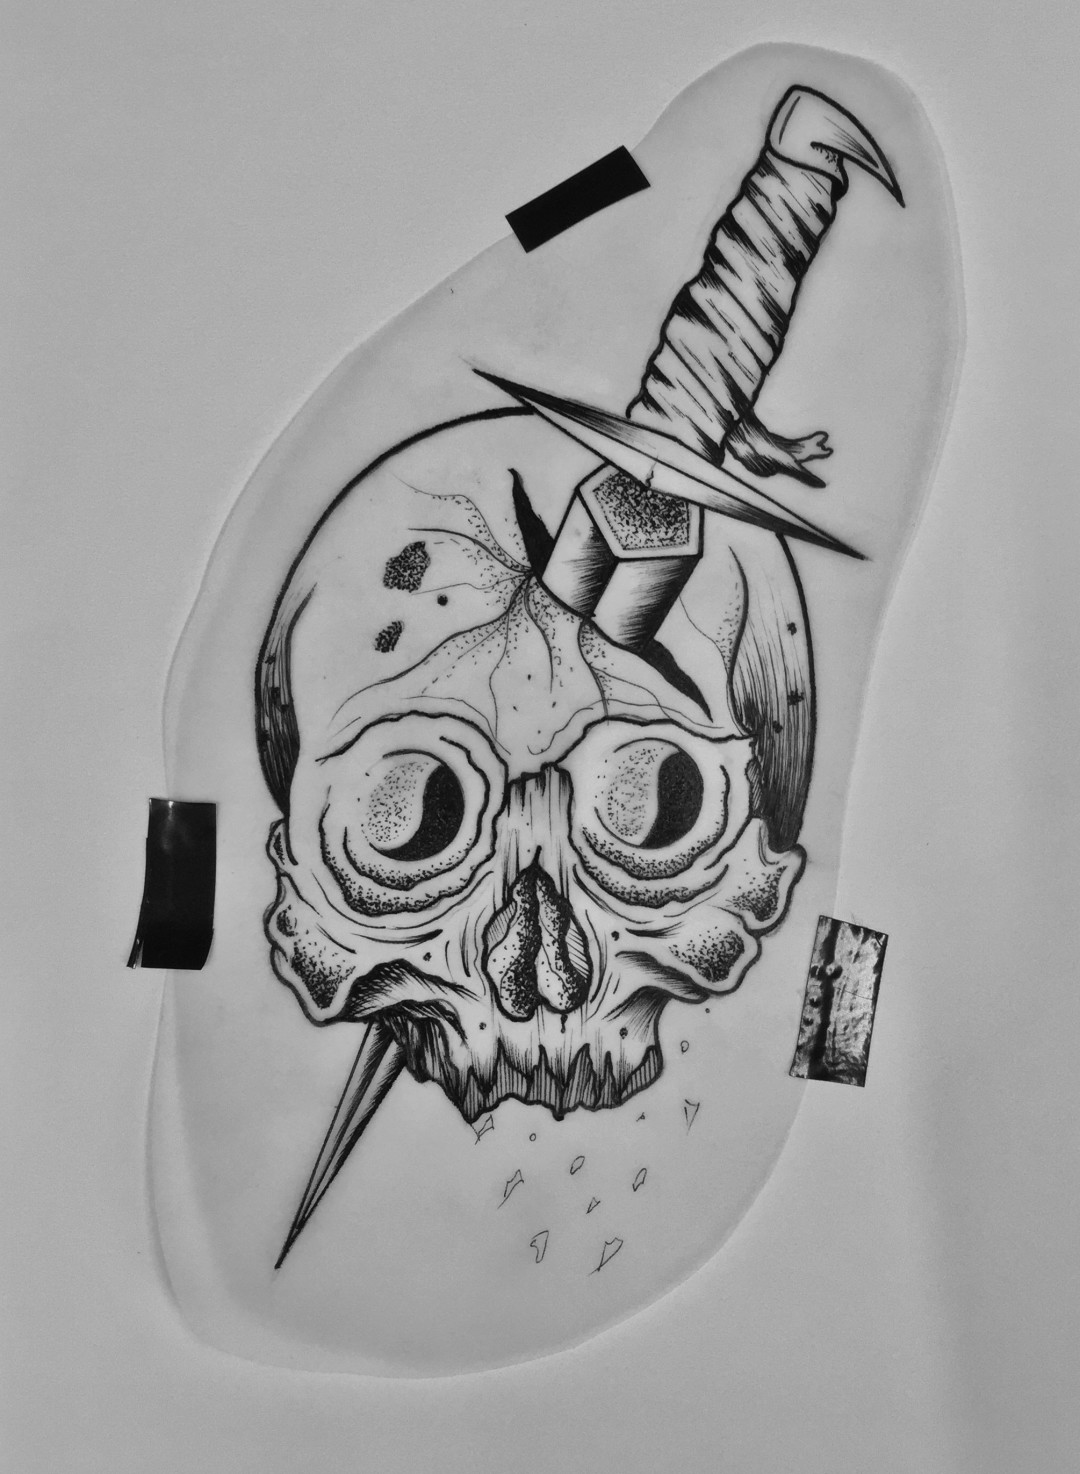 Knifey Skully